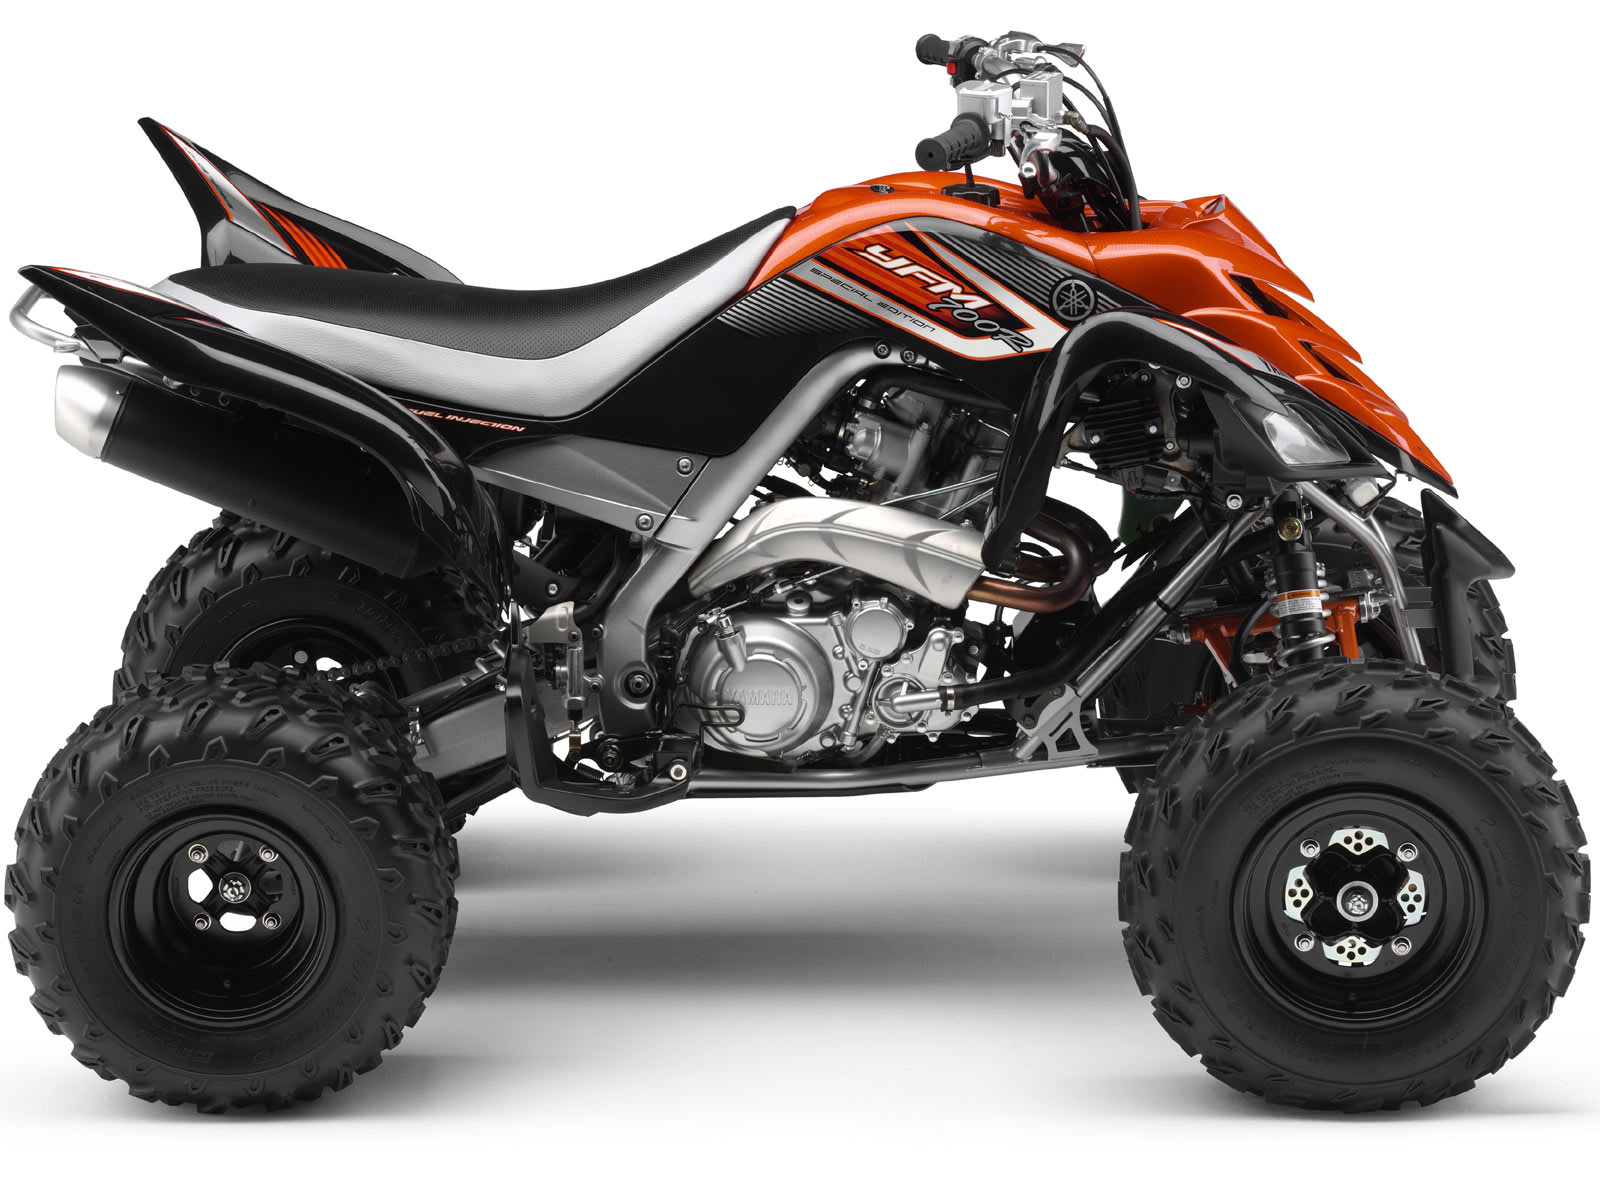 2007 yamaha raptor 700r atv pictures review specifications. Black Bedroom Furniture Sets. Home Design Ideas